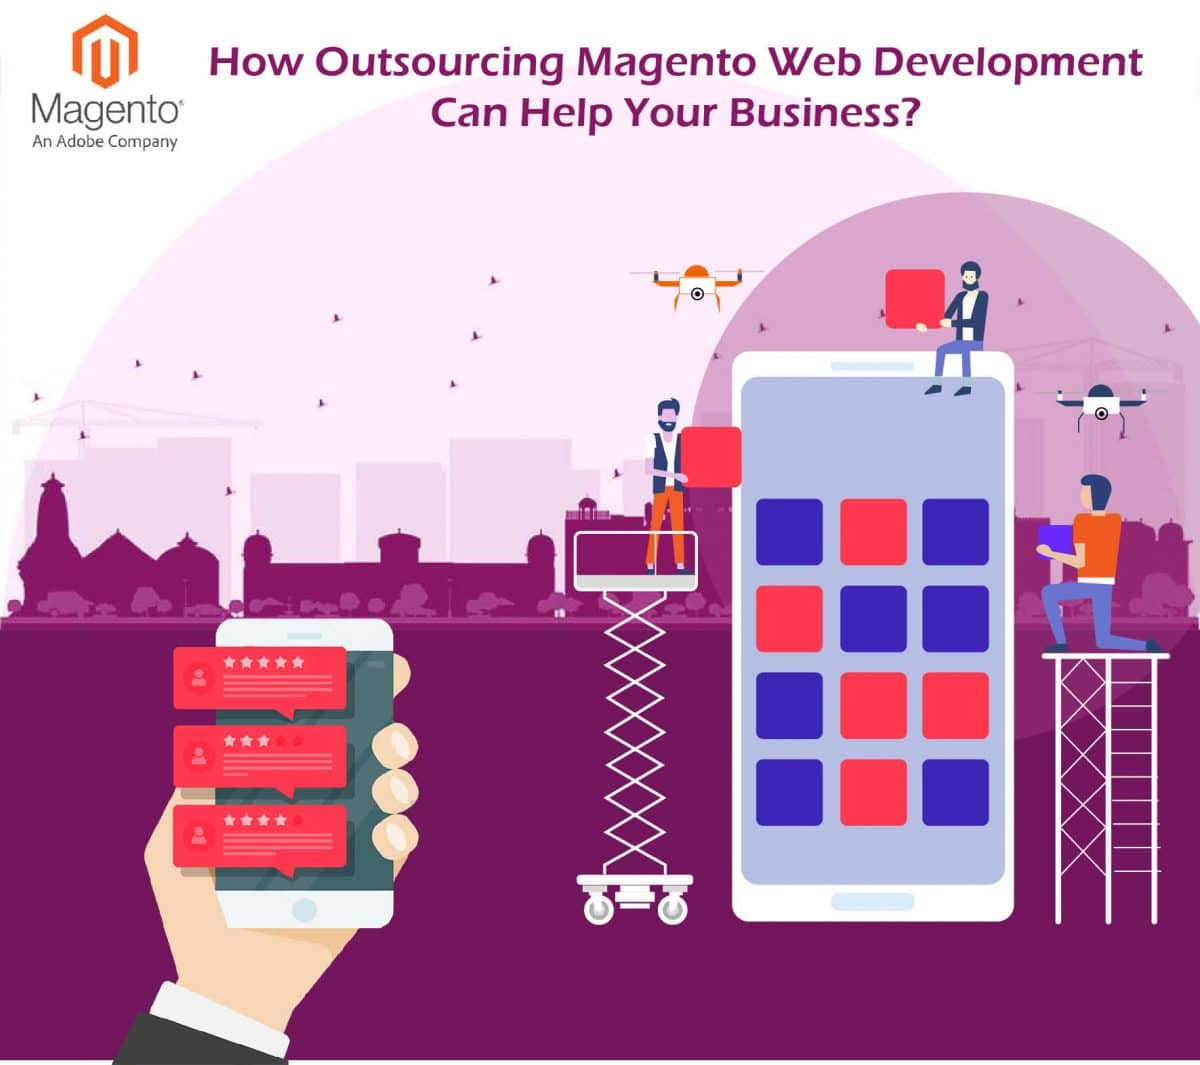 How Outsourcing Magento Web Development Can Help Your Business?